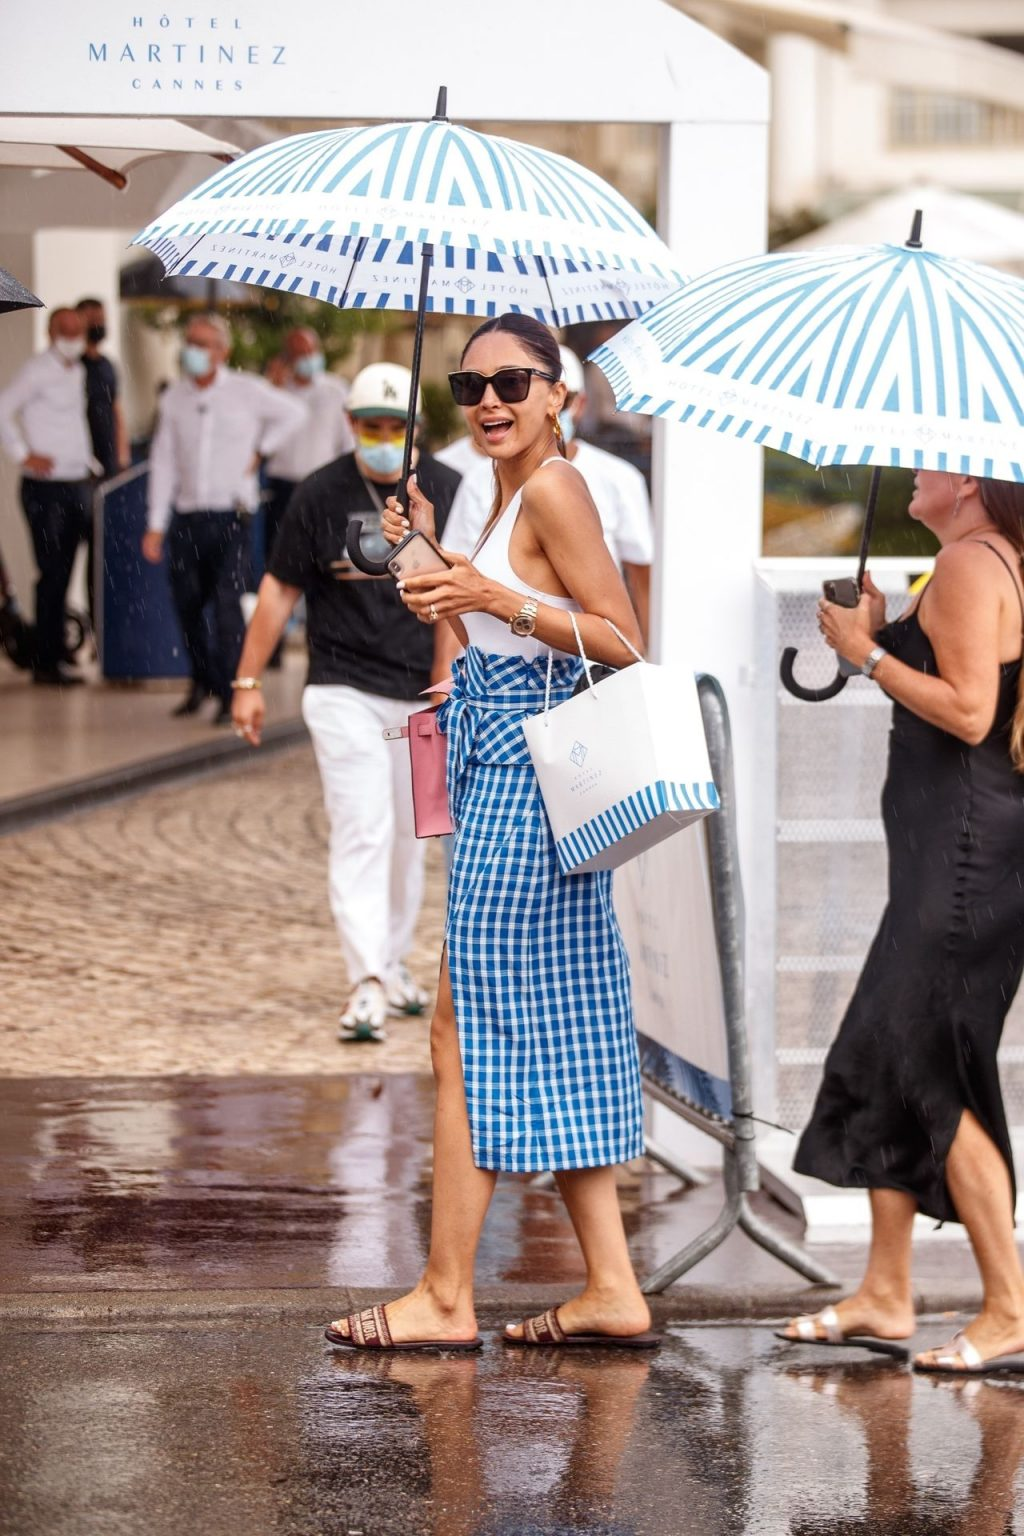 Patricia Gloria Contreras is Spotted Braless at the Martinez Hotel in Cannes (8 Photos)